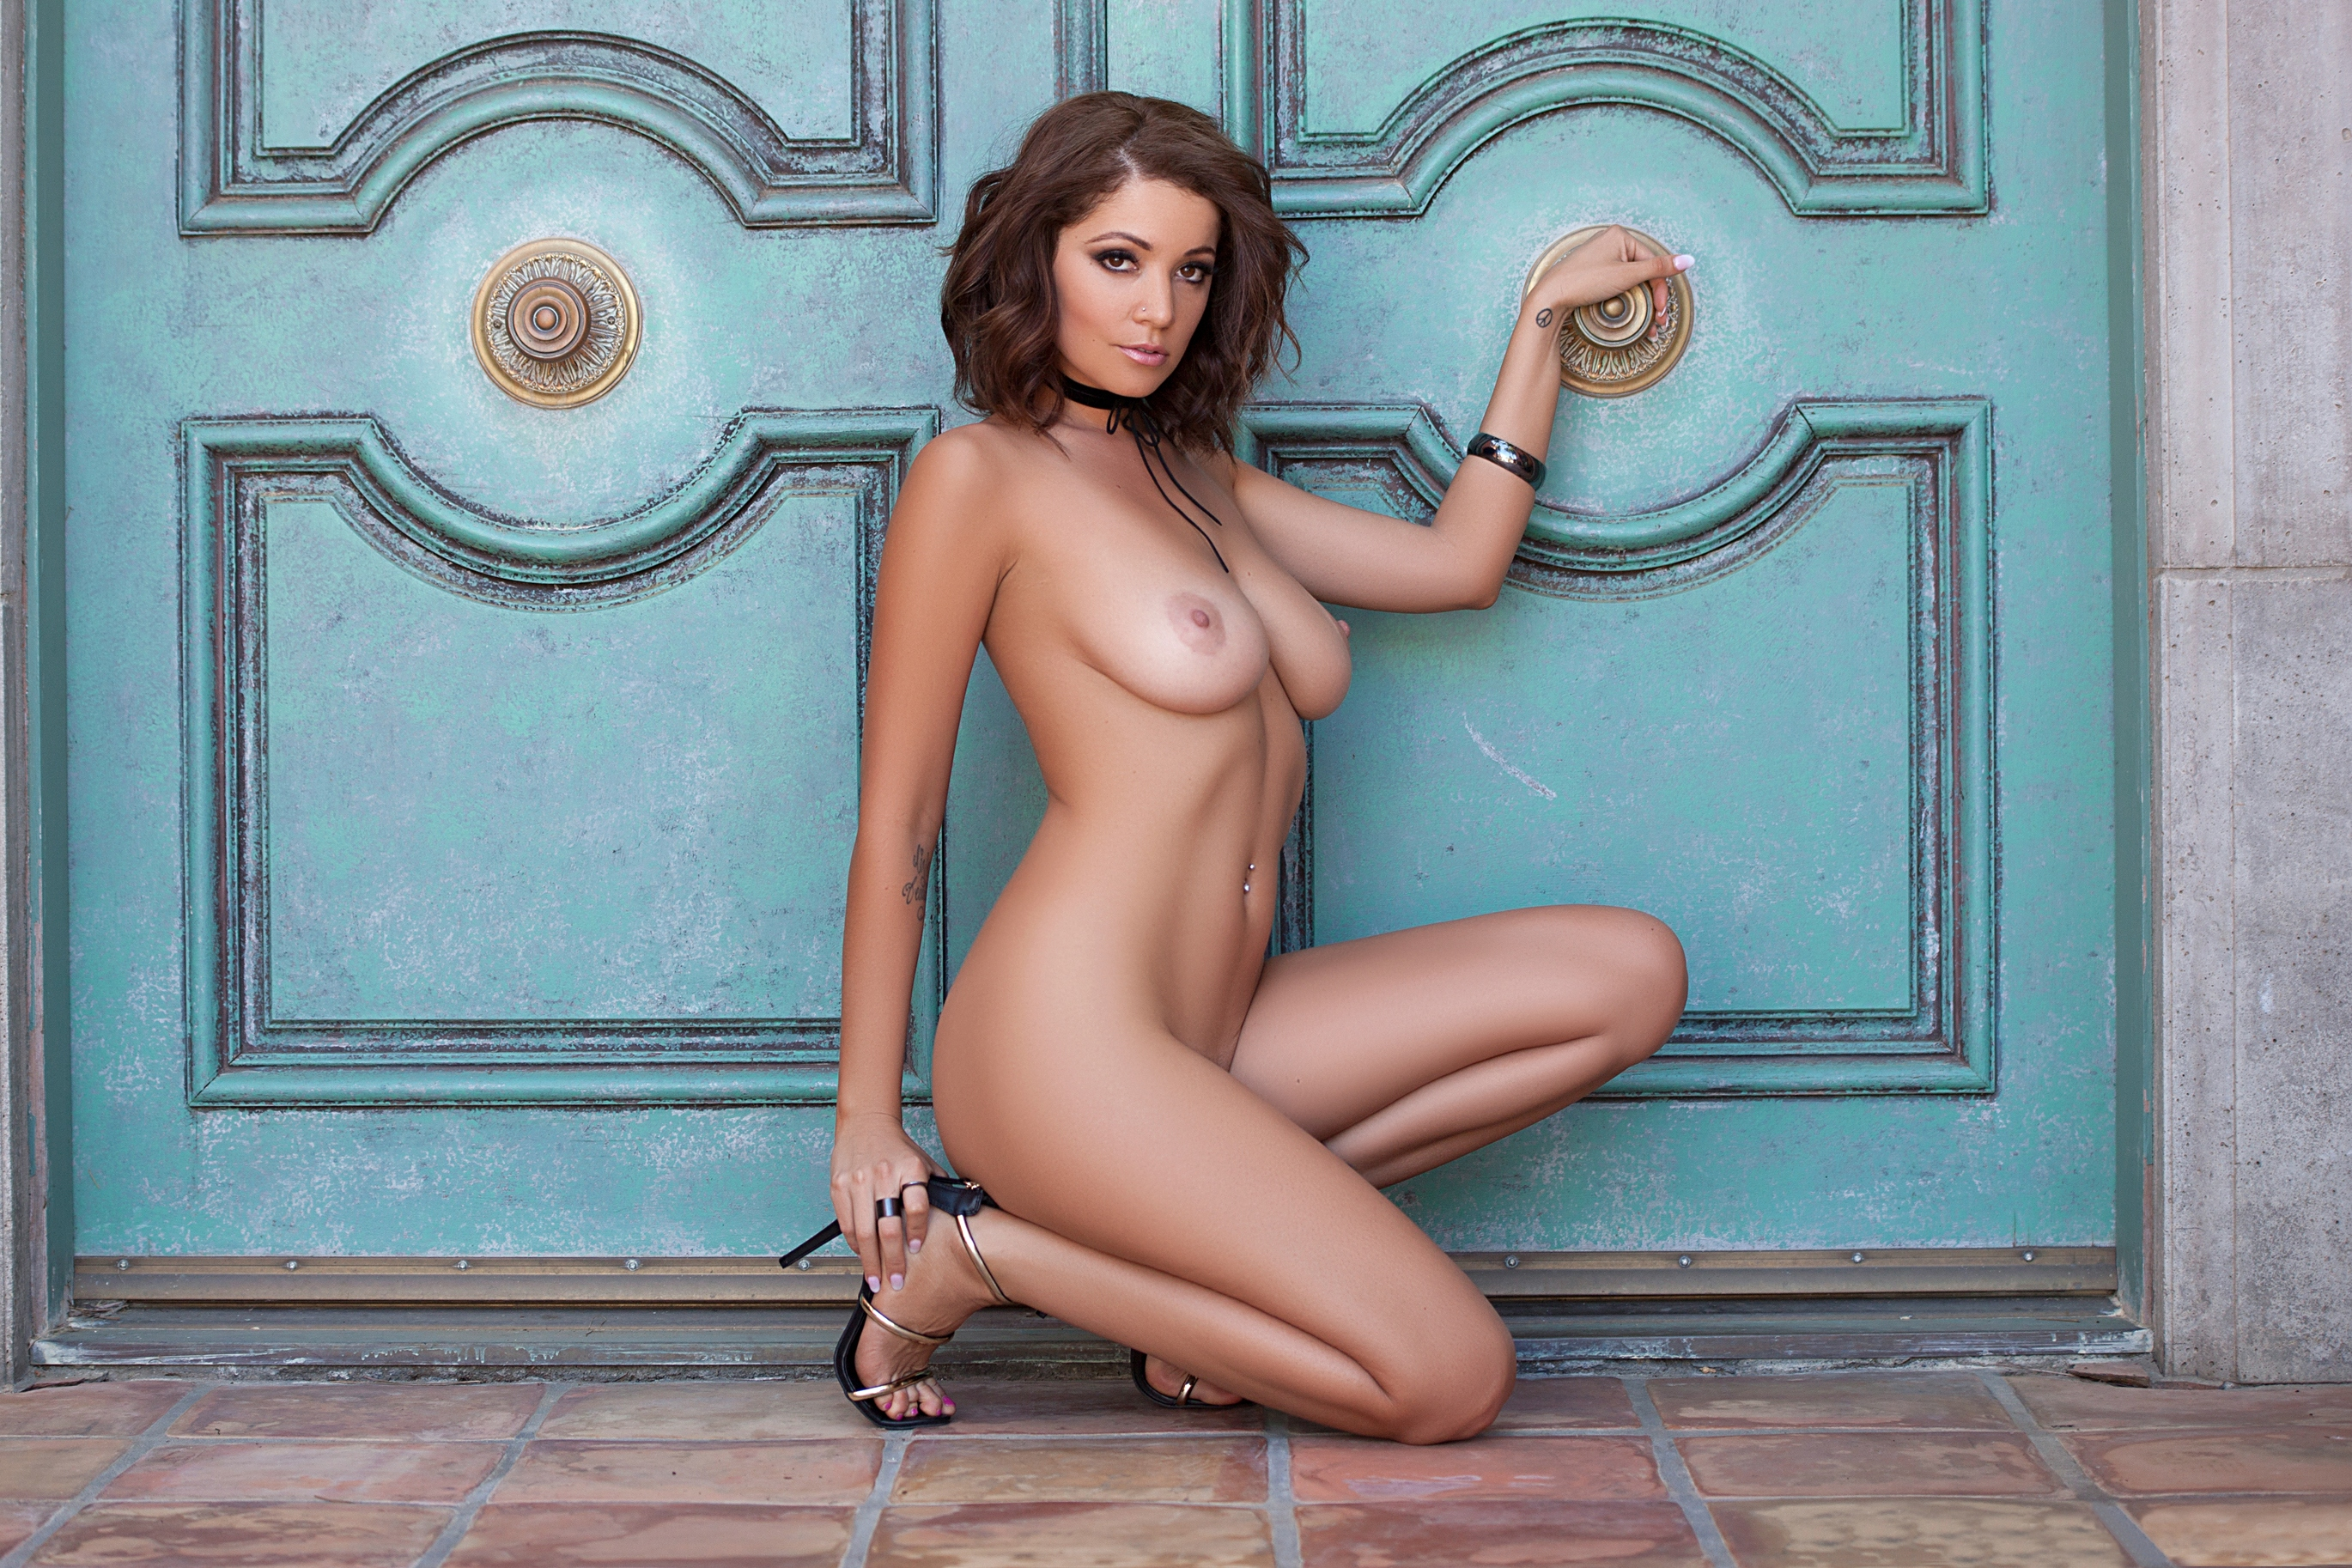 Wallpaper Ali Rose, Sexy Girl, Adult Model, Nude, Naked -5334